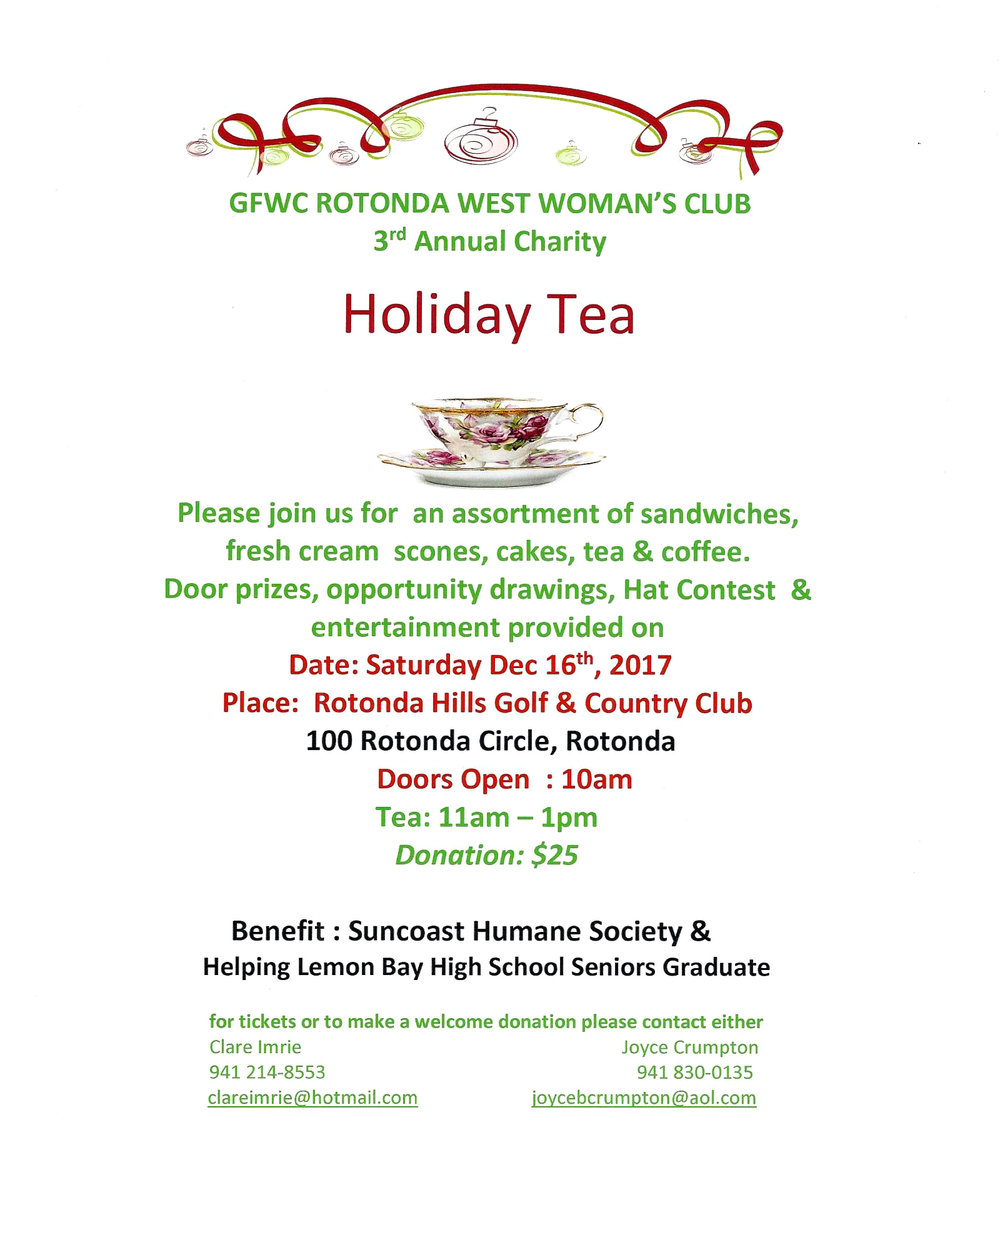 GFWC EVENT holiday tea.jpg